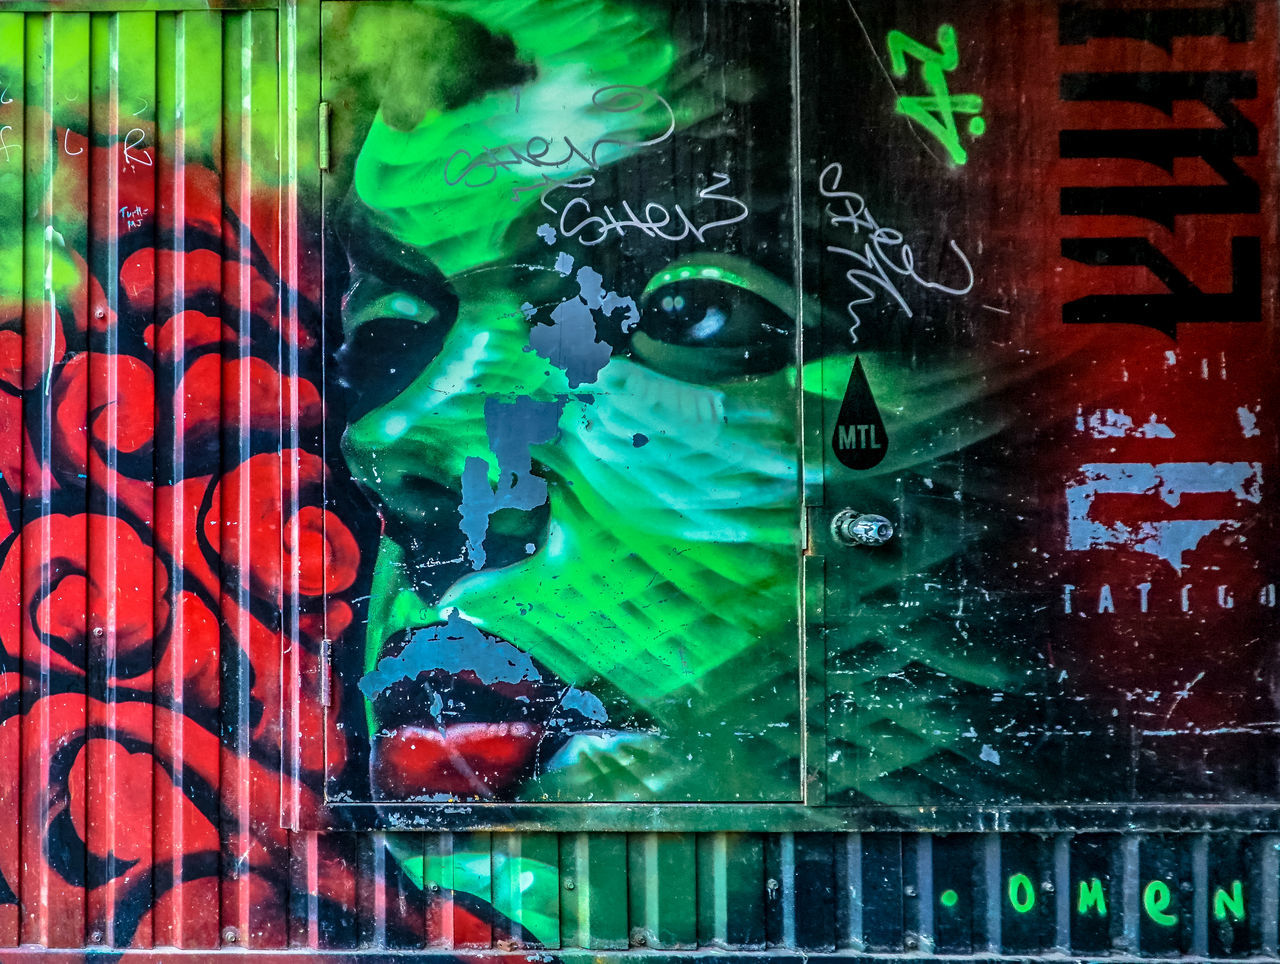 Graffiti town 18-105mm Art Beauty City City Life Faces Graffiti Graffiti & Streetart Graffiti Art Graffiti Wall Graffitiporn Green Color Multi Colored Multicolor Multicolored Multicolors  No People Painting Sony A6300 Street Art Street Art/Graffiti Urban Urban Exploration Urban Lifestyle Walking Around